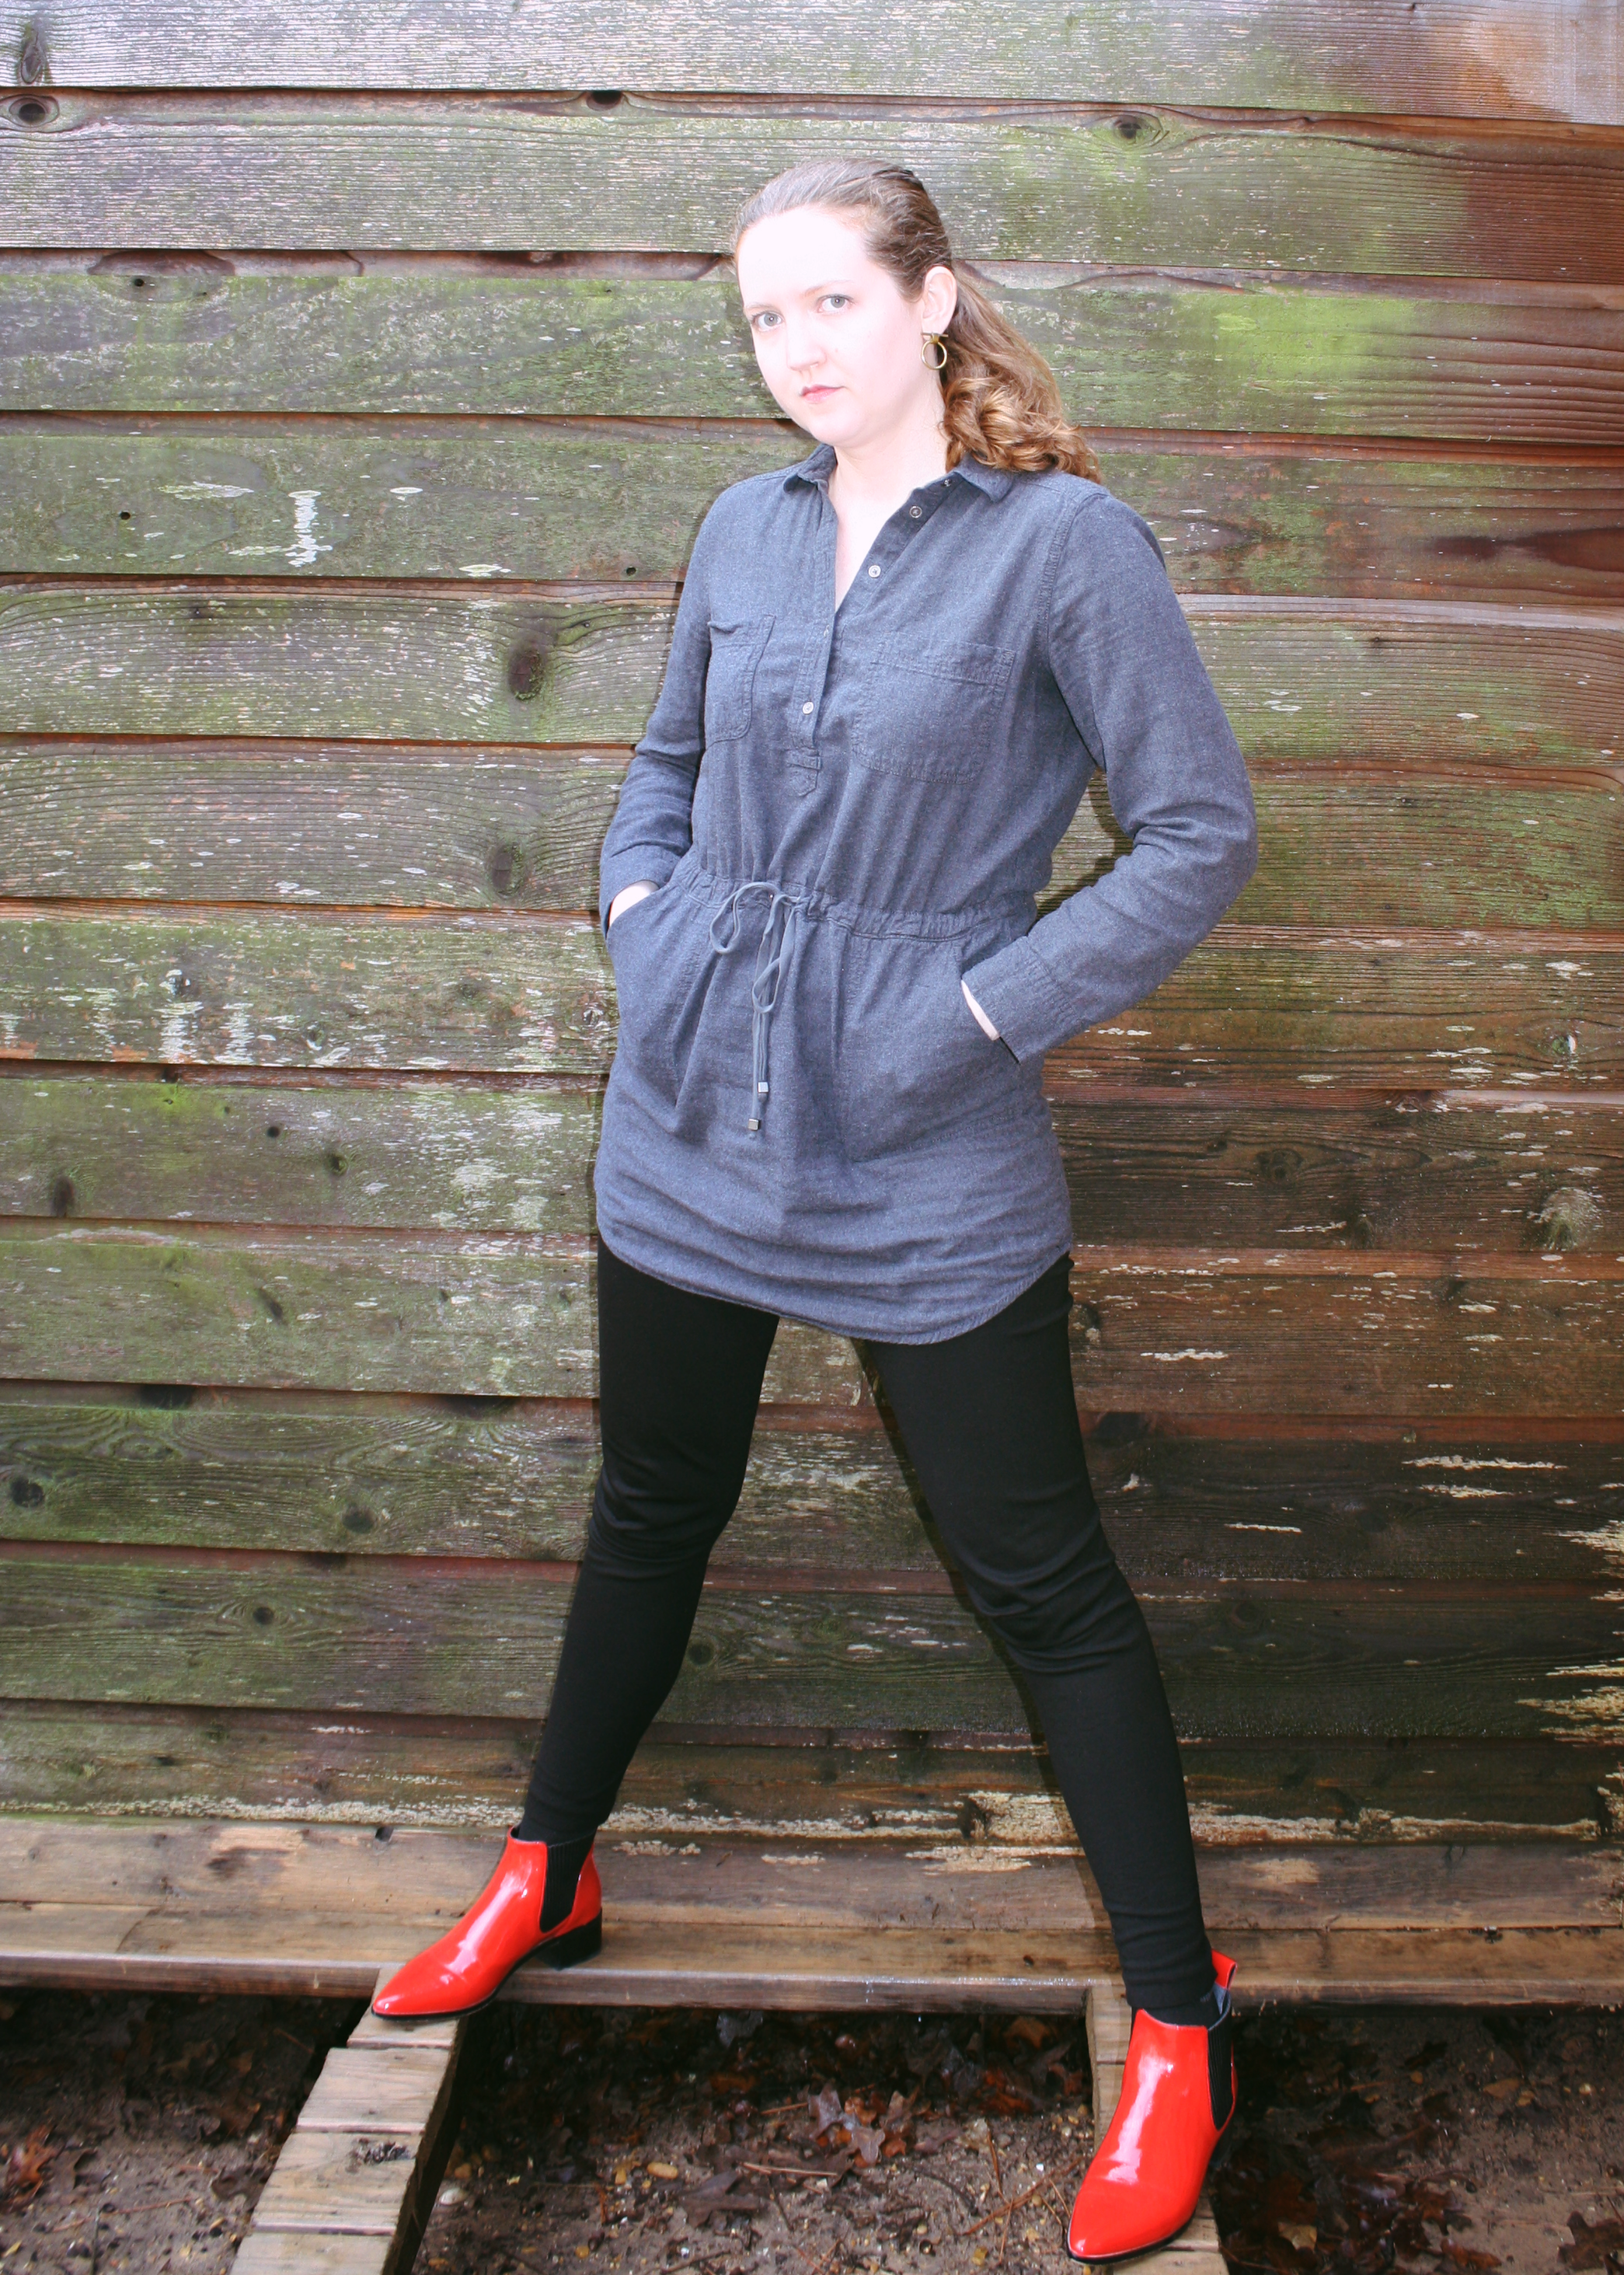 Dresses and trenches for rainy days LOFT grey shirt dress Red Dolce vita boots.png